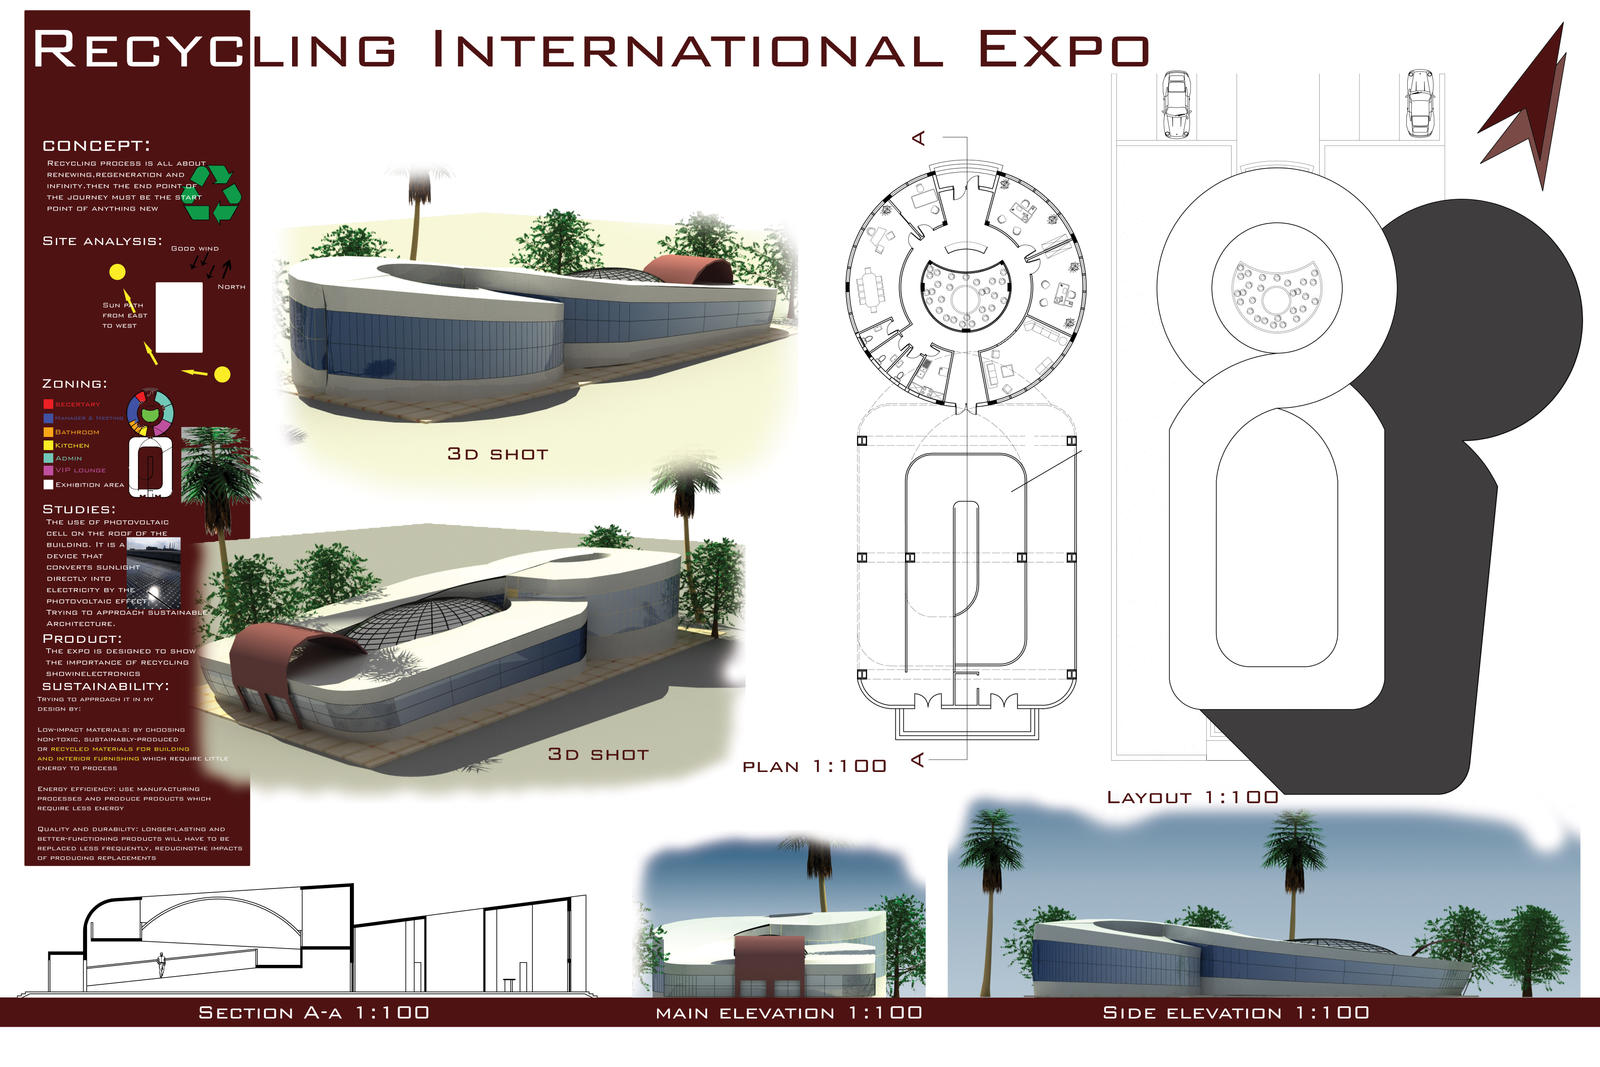 Architectural design exhbition by shadyonly on deviantart for What is design concept in architecture